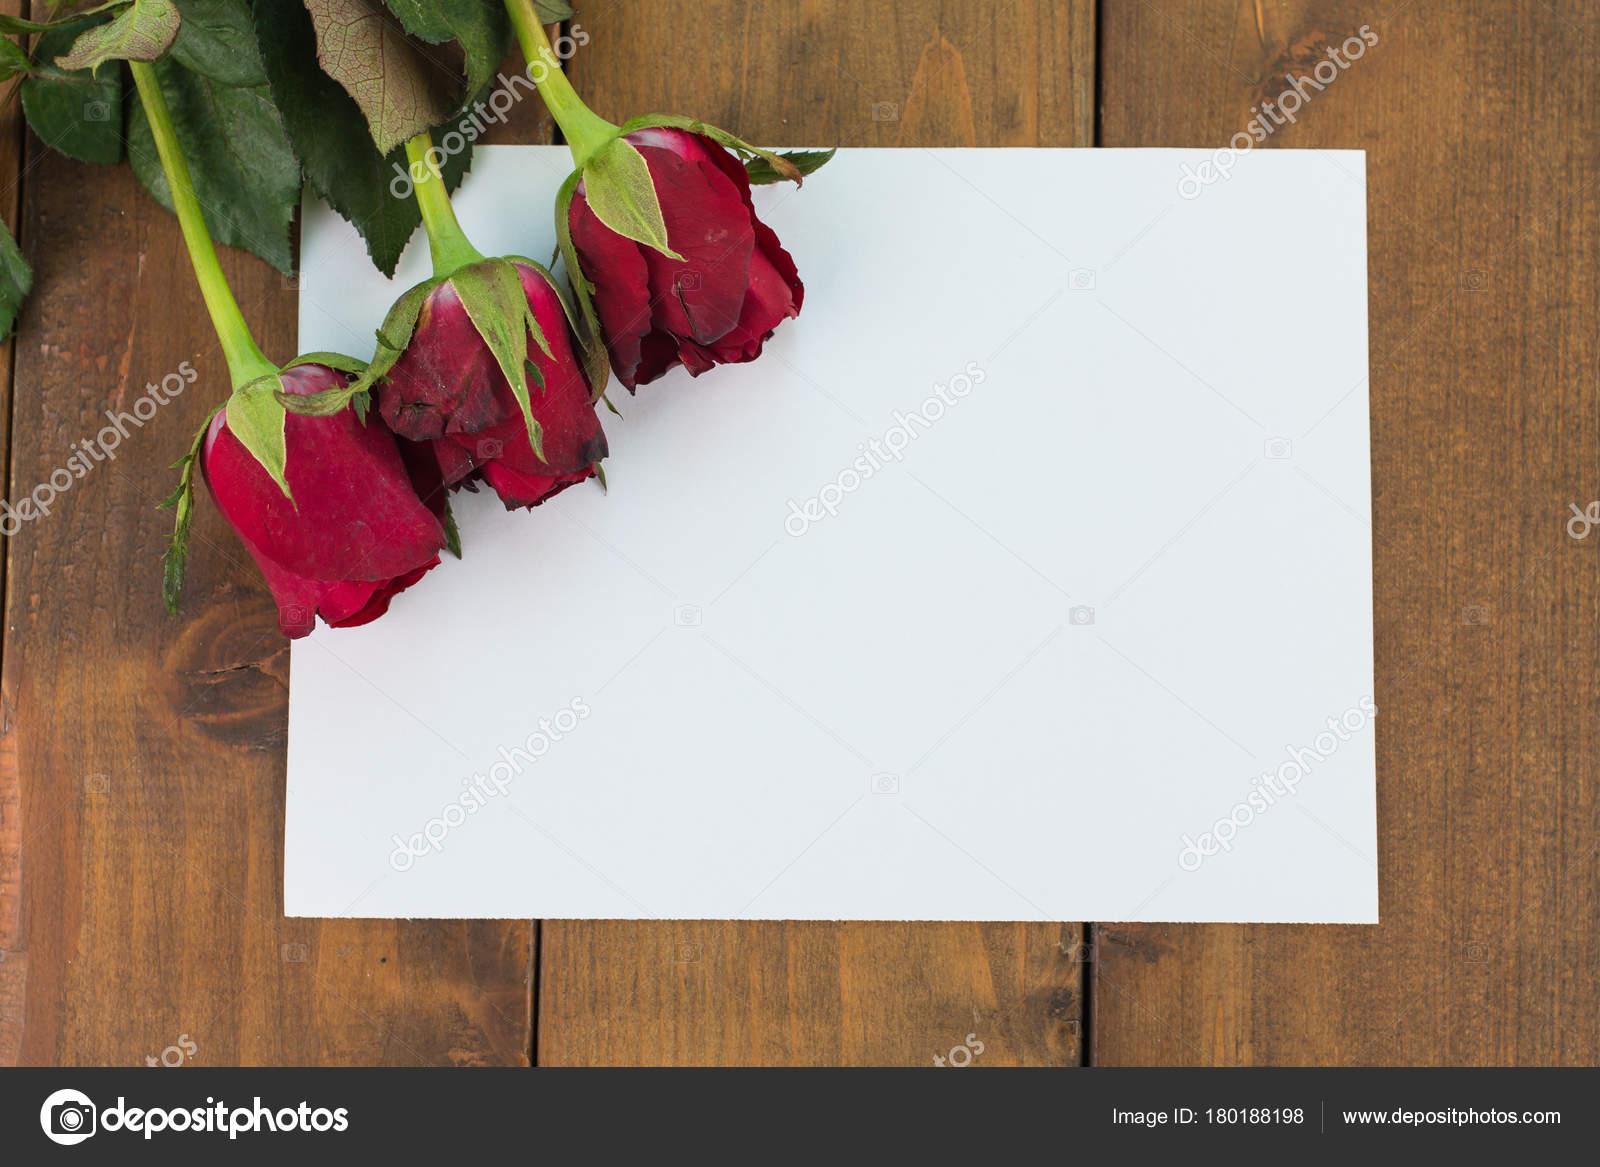 Close Up Of Red Roses On A Wooden Background With Blank Message Sign